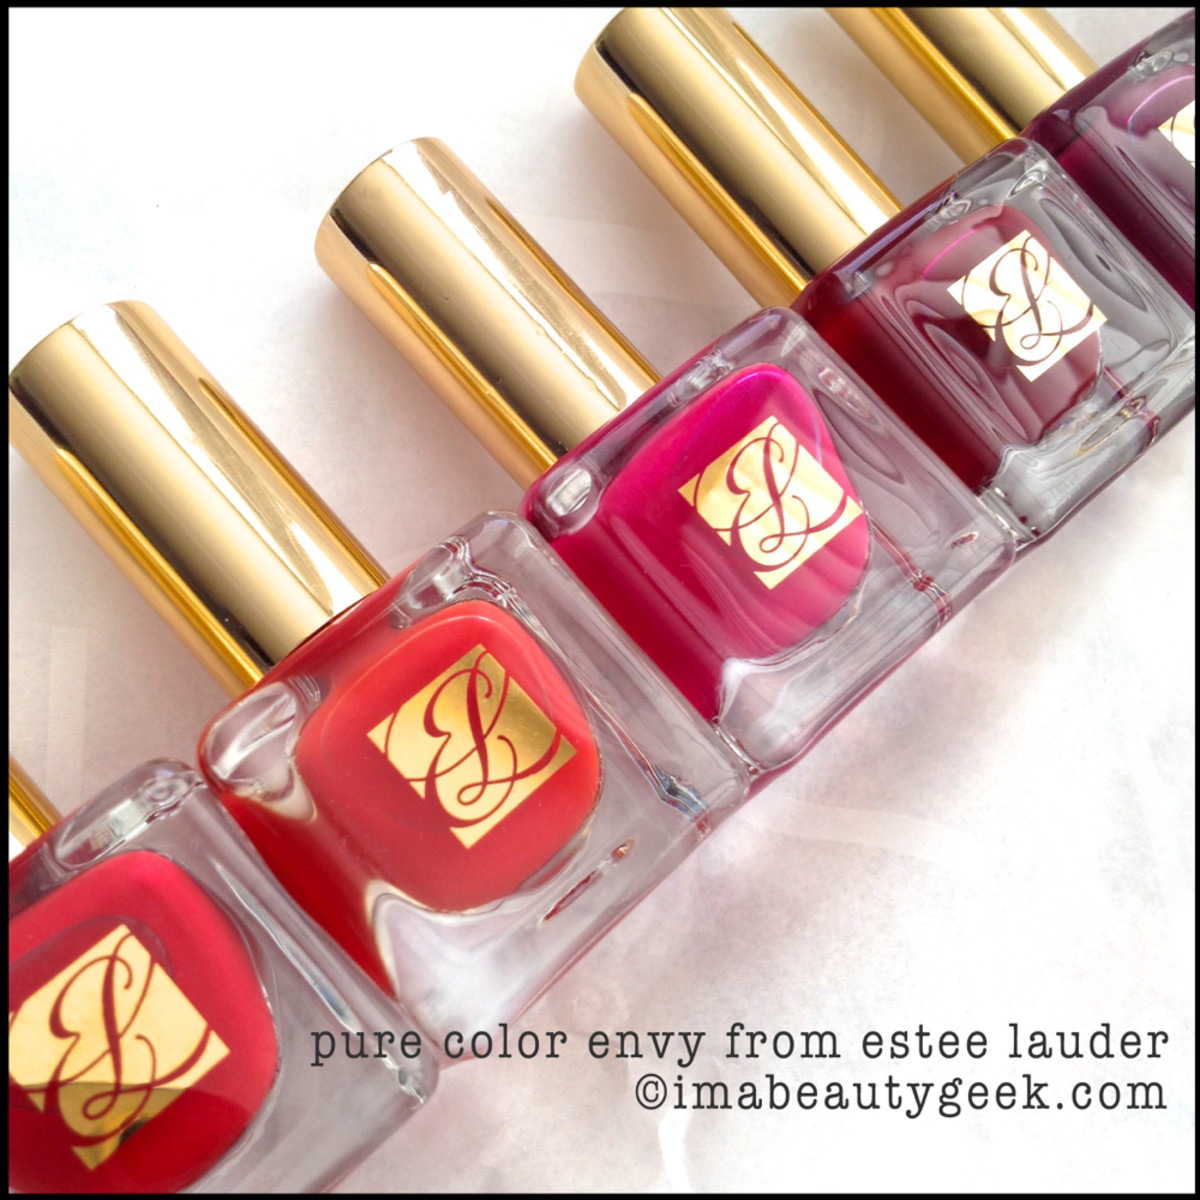 Estee Lauder polish_Estee Lauder Pure Color Envy Polish